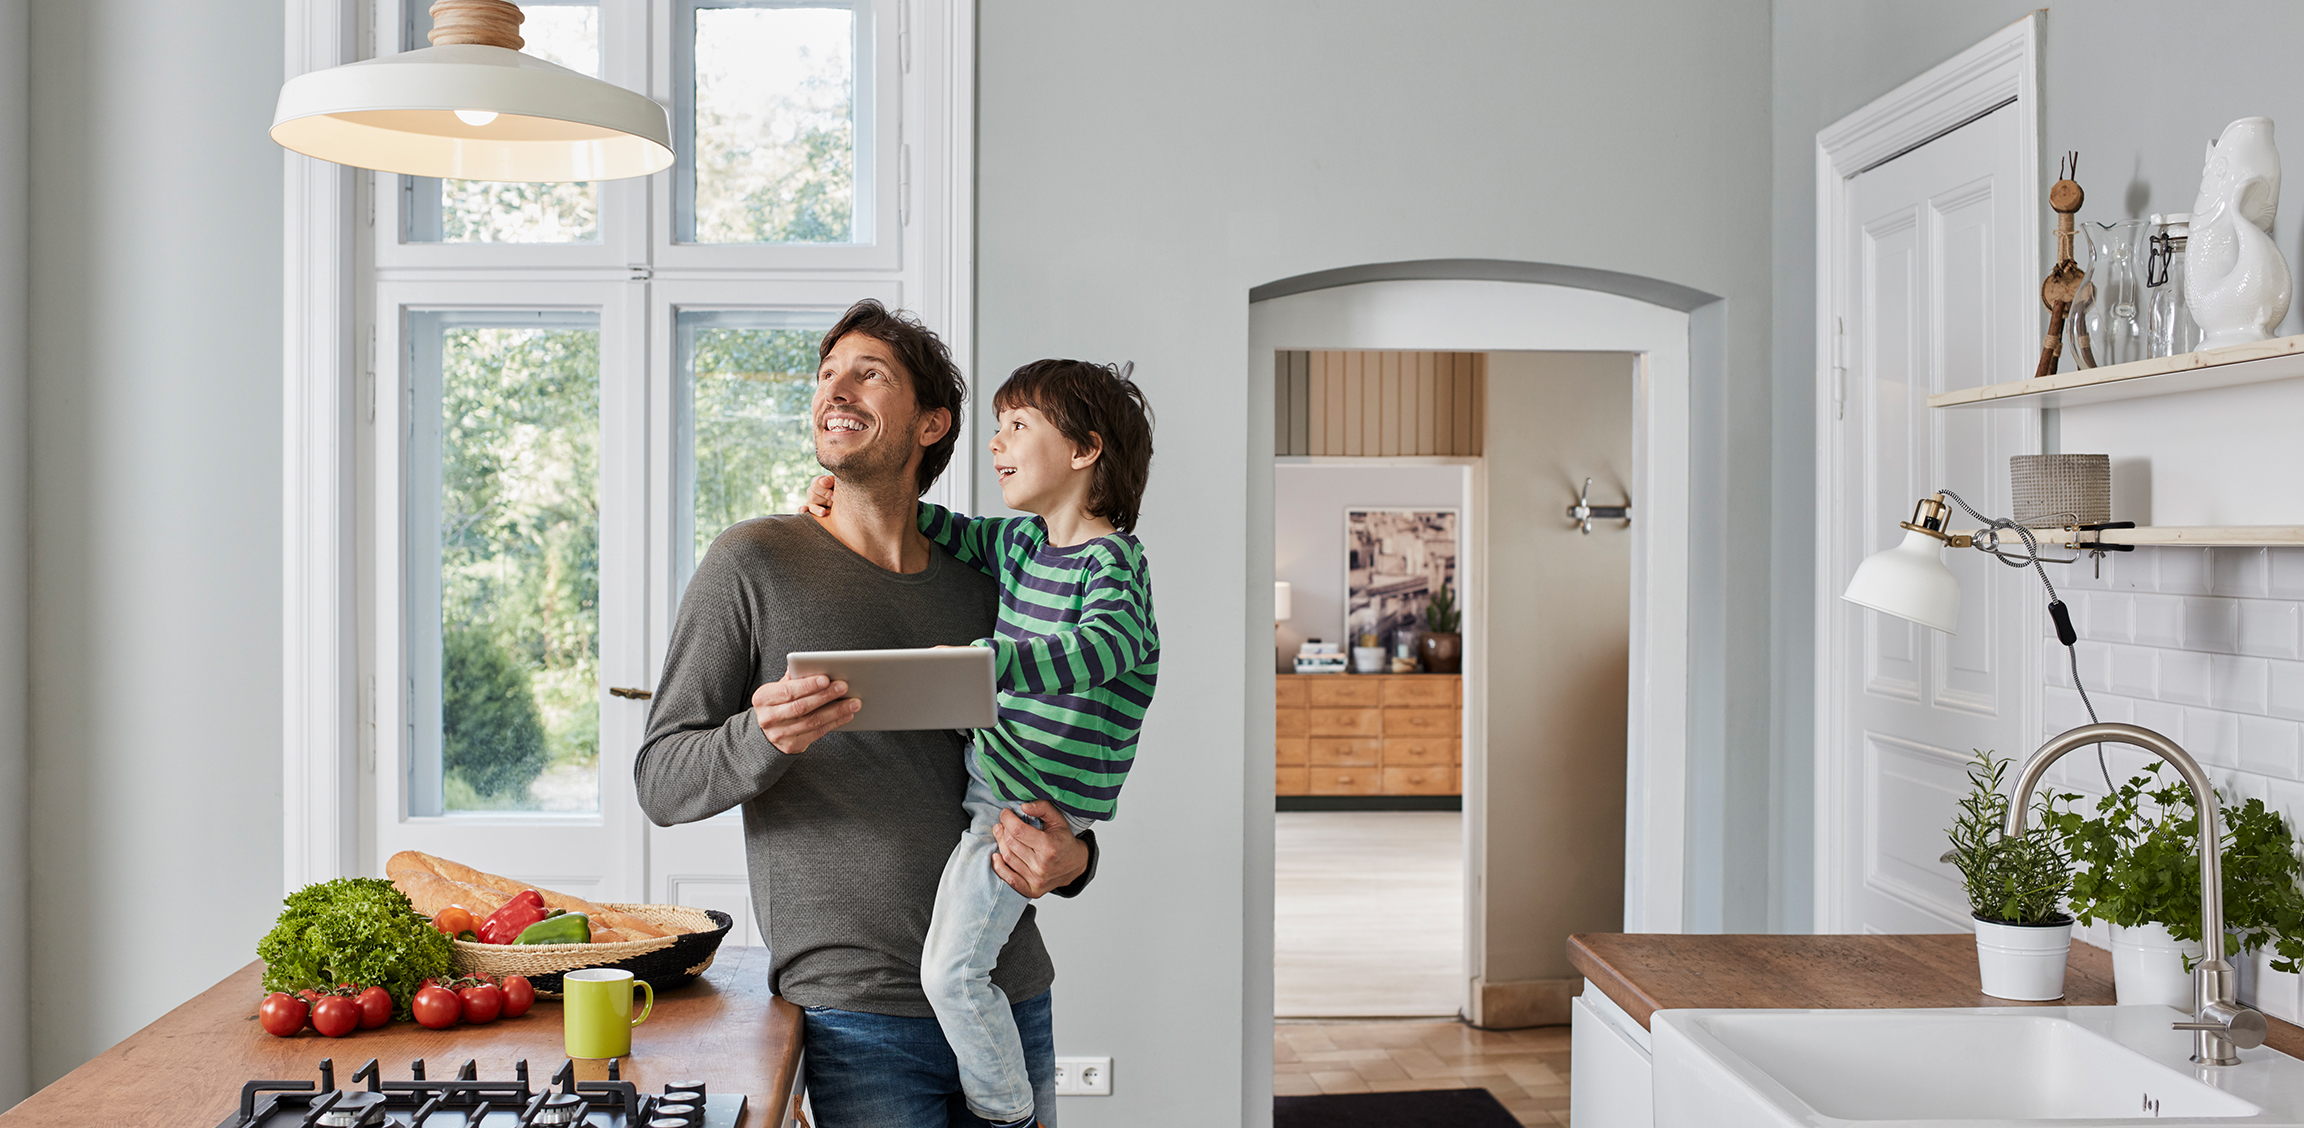 A family enjoys security and automation at home